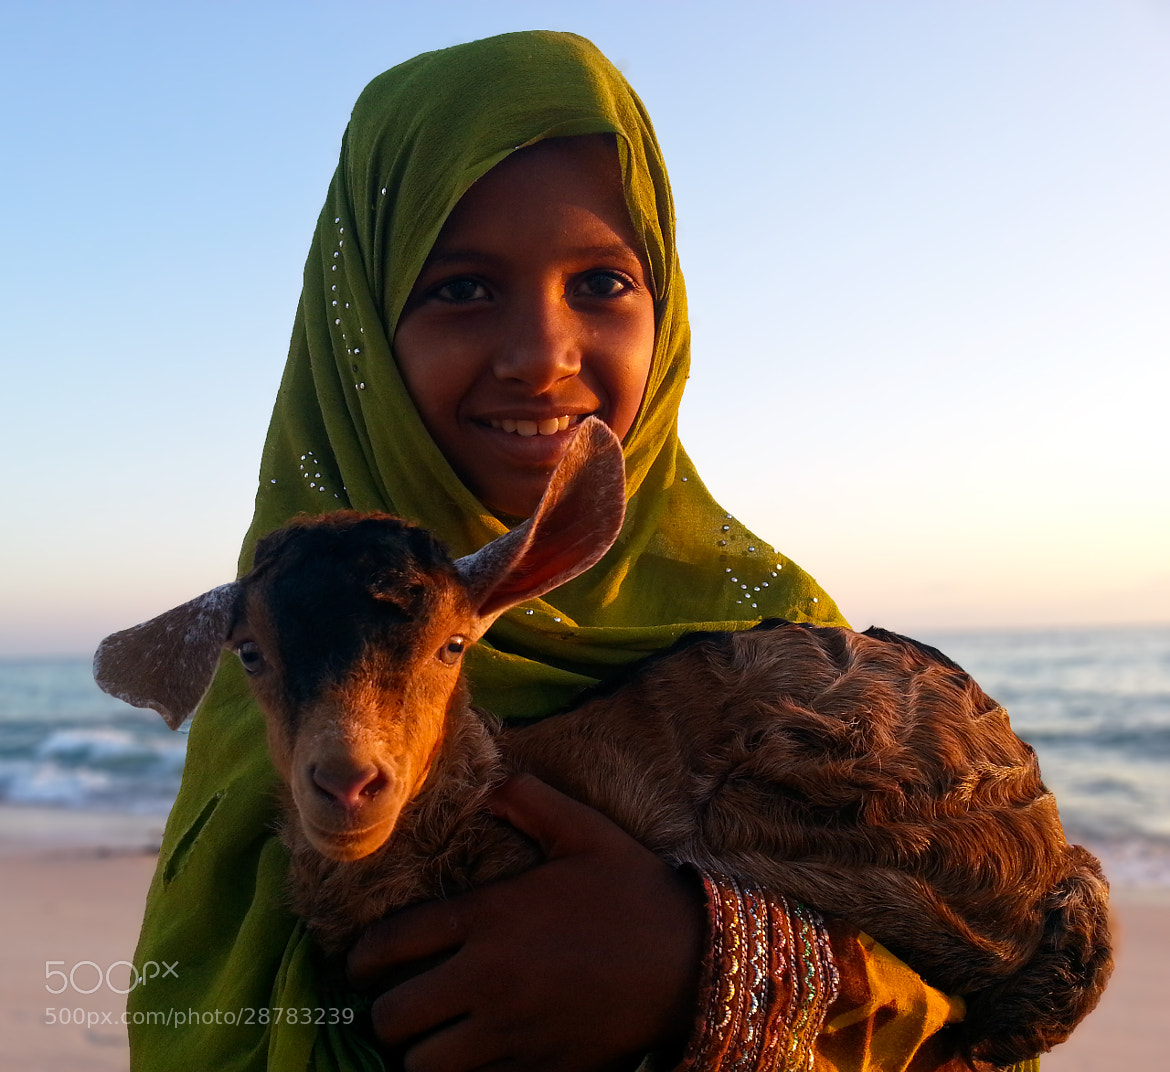 Photograph Socotra Girl by Tom Lowe on 500px